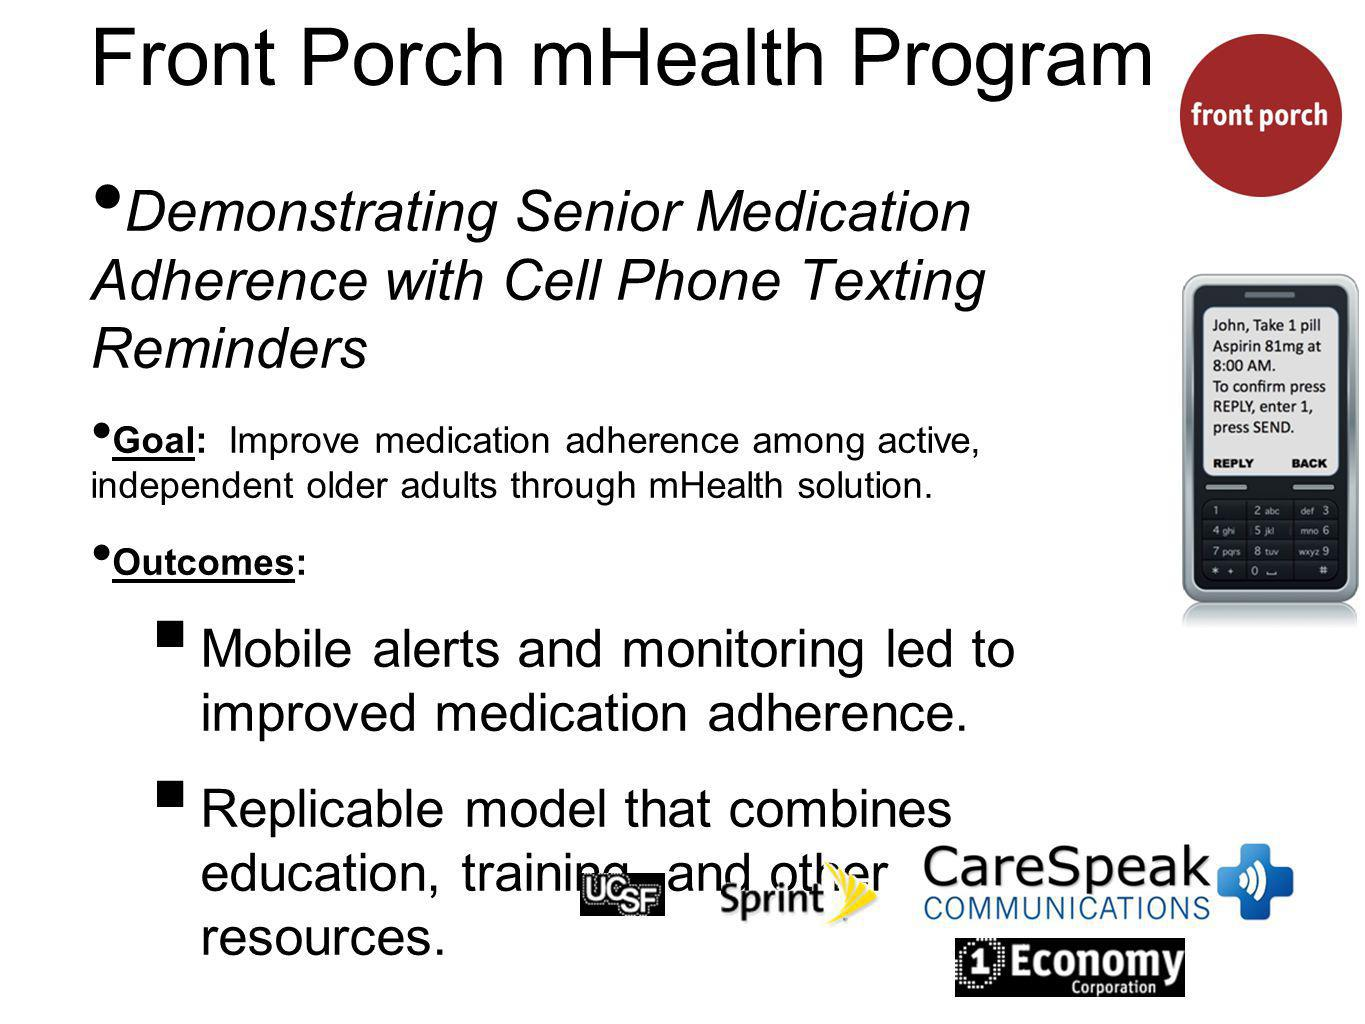 Front Porch mHealth Program Demonstrating Senior Medication Adherence with Cell Phone Texting Reminders Goal: Improve medication adherence among active, independent older adults through mHealth solution.